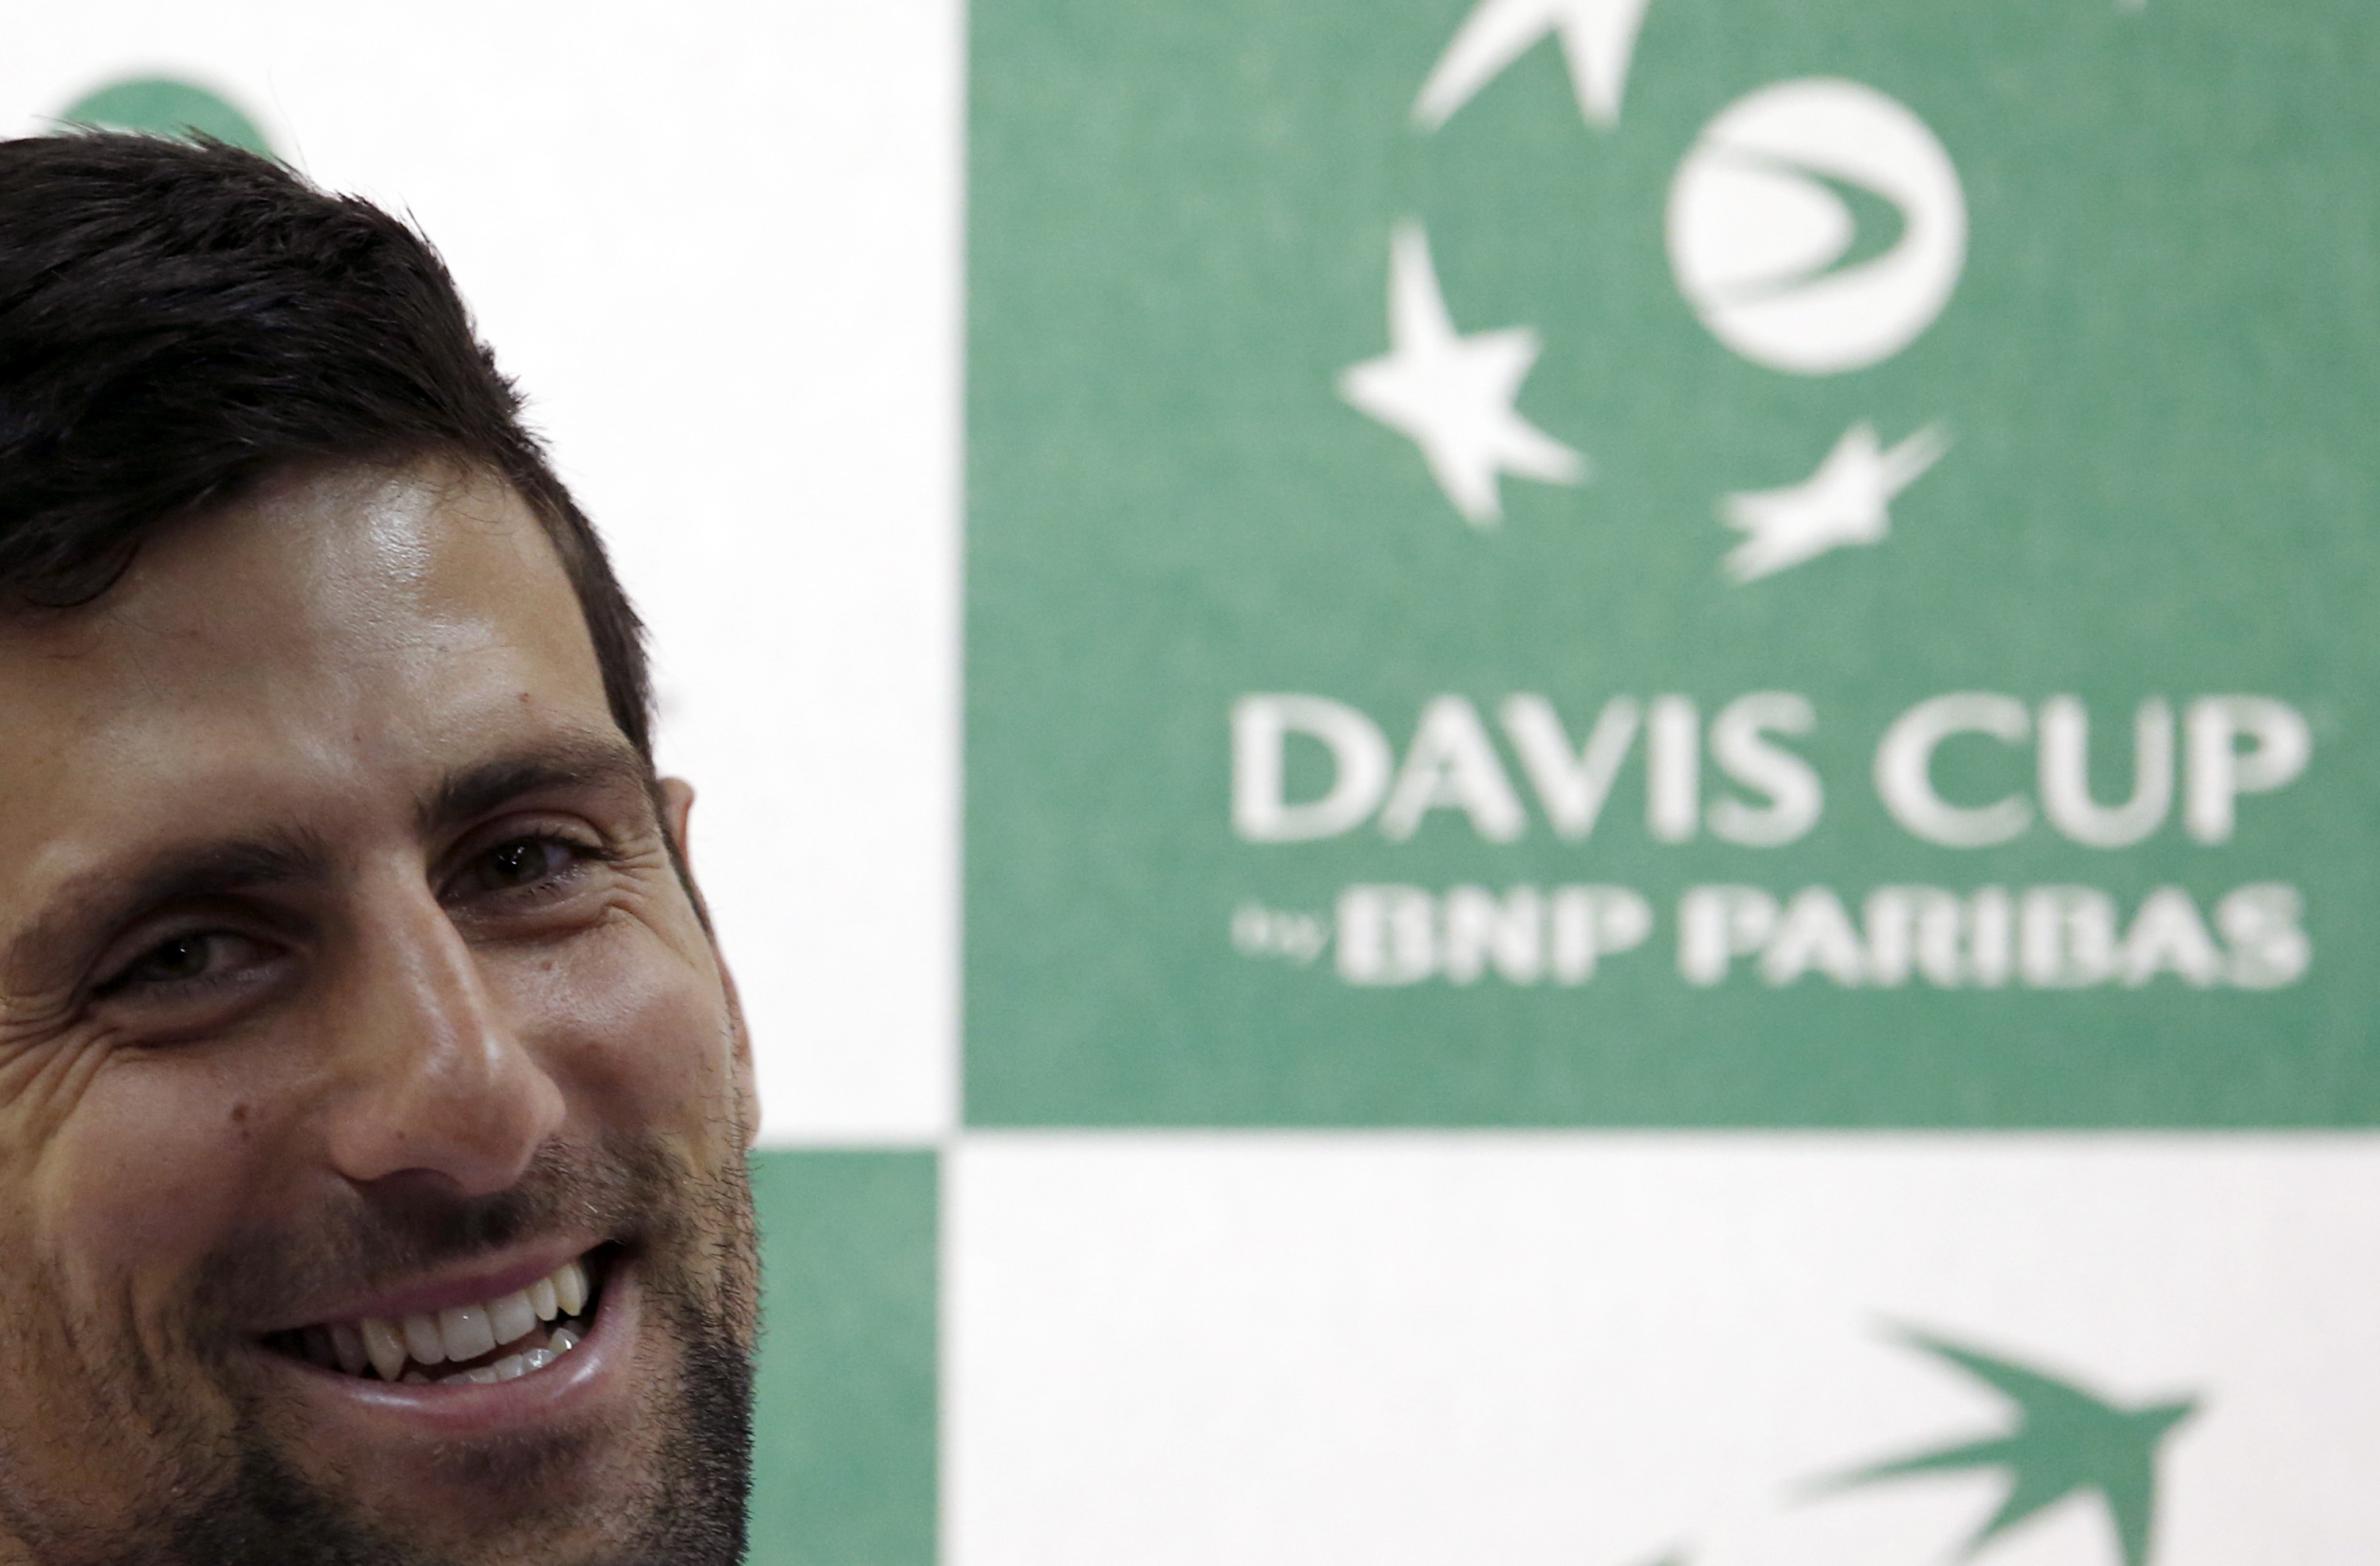 Serbian Davis Cup team player Novak Djokovic smiles during a press conference in Belgrade, Serbia, Wednesday, March 2, 2016. Serbia will play Kazakhstan in the Davis Cup World Group 1st Rrund starting on March 4-6, in Belgrade. (AP Photo/Darko Vojinovic)